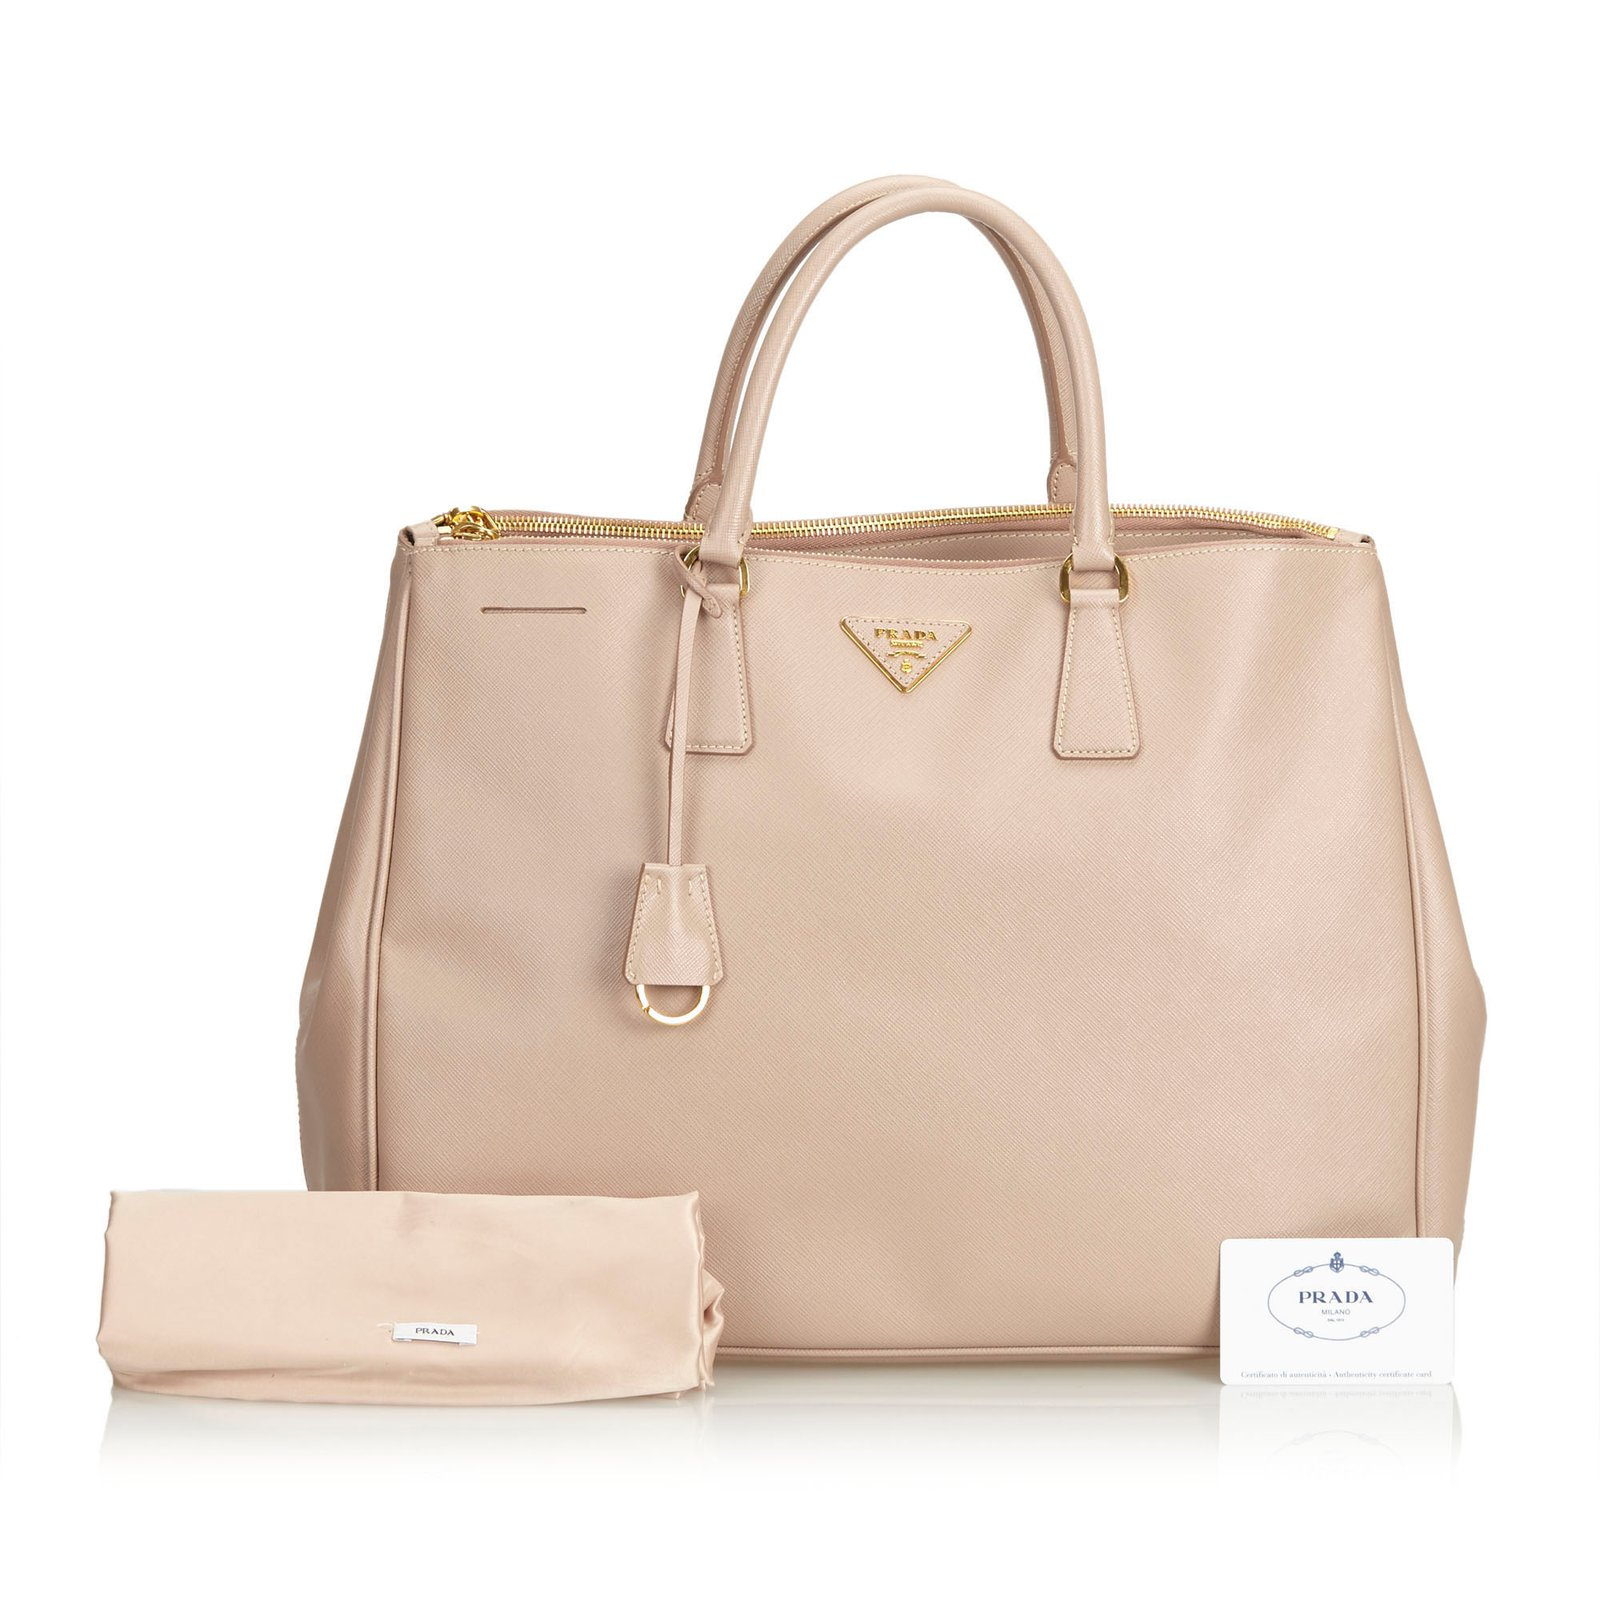 1c31446a7756 Prada Saffiano Leather Tote Bag Totes Leather,Other Brown,Beige ref ...